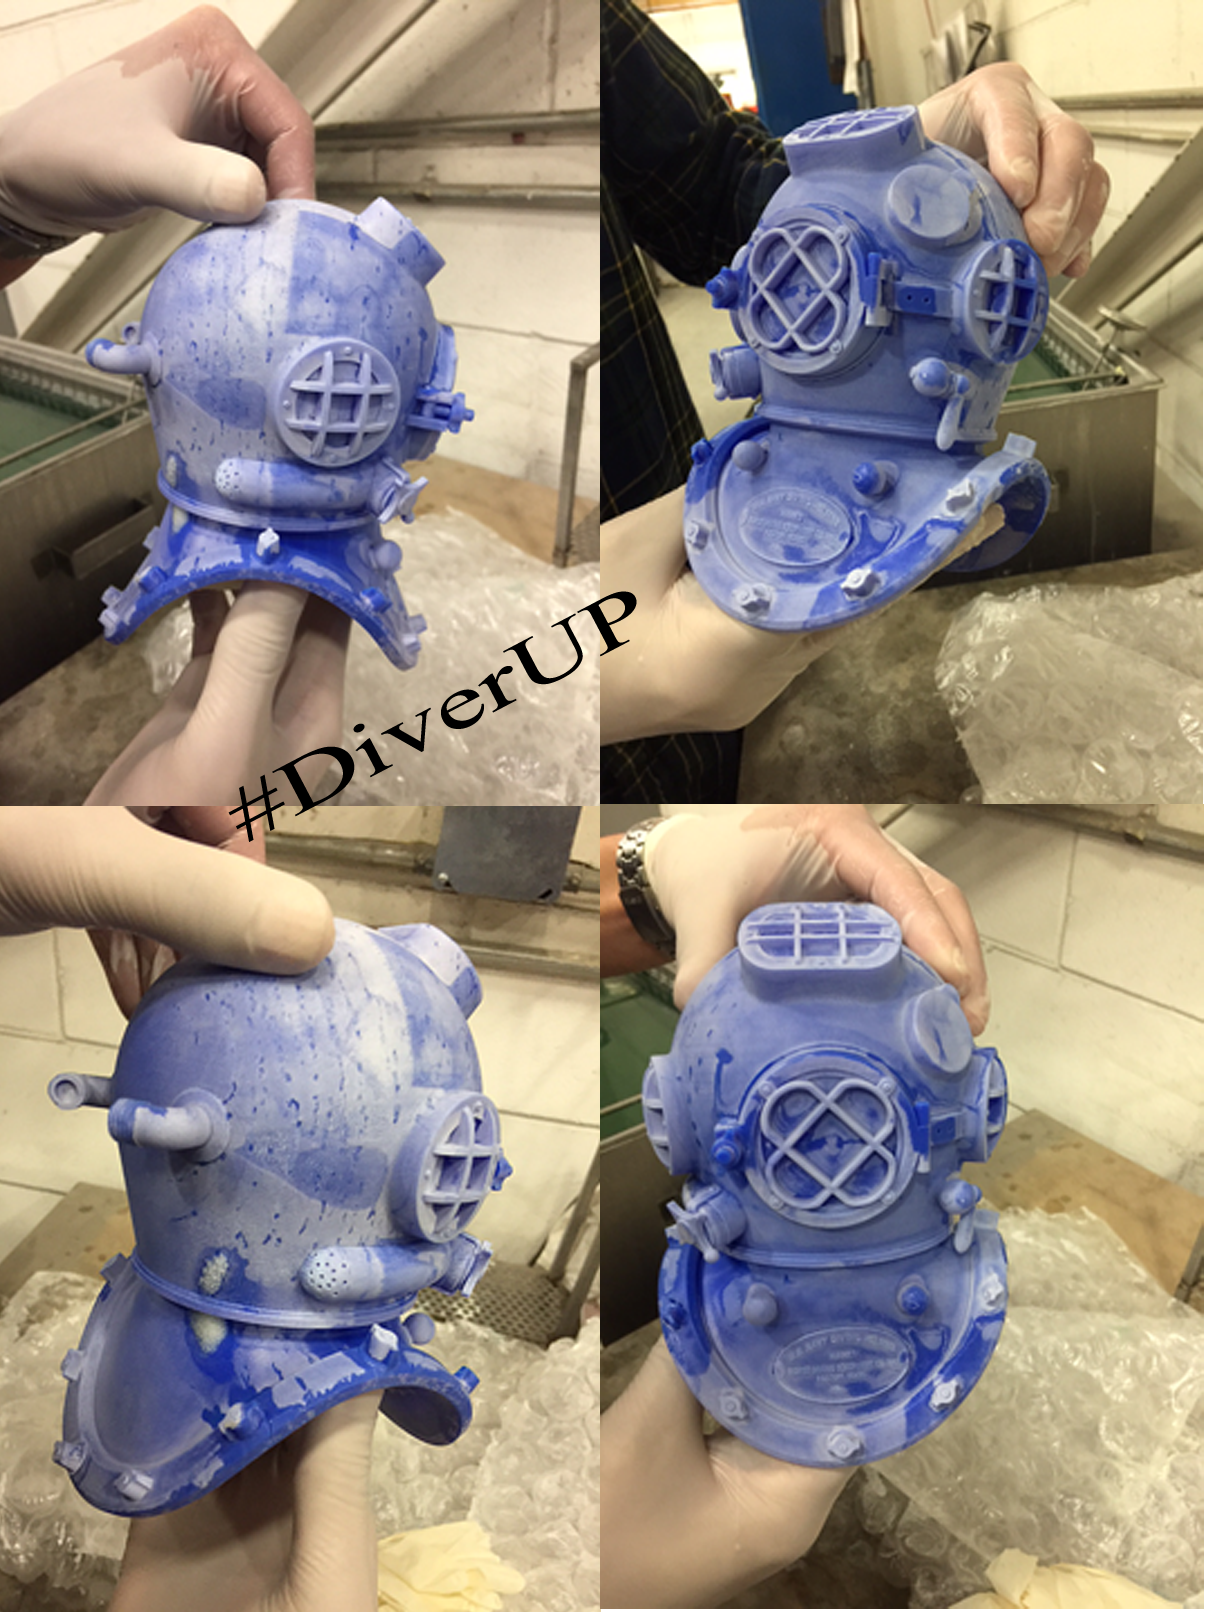 I am so very excited to see the final wax mold (before cleaning) of the helmet for  Diver UP . The wax mold for her body will be ready in a few days and then an 11 inch Bronze cast will be created. All in collaboration with the fine art foundry of Polich Tallix in New York State.  To see the full project and to purchase one of the first of this limited bronze series click this link:    https://www.indiegogo.com/projects/diver-up-sculpture-project-art/x/16478757#/